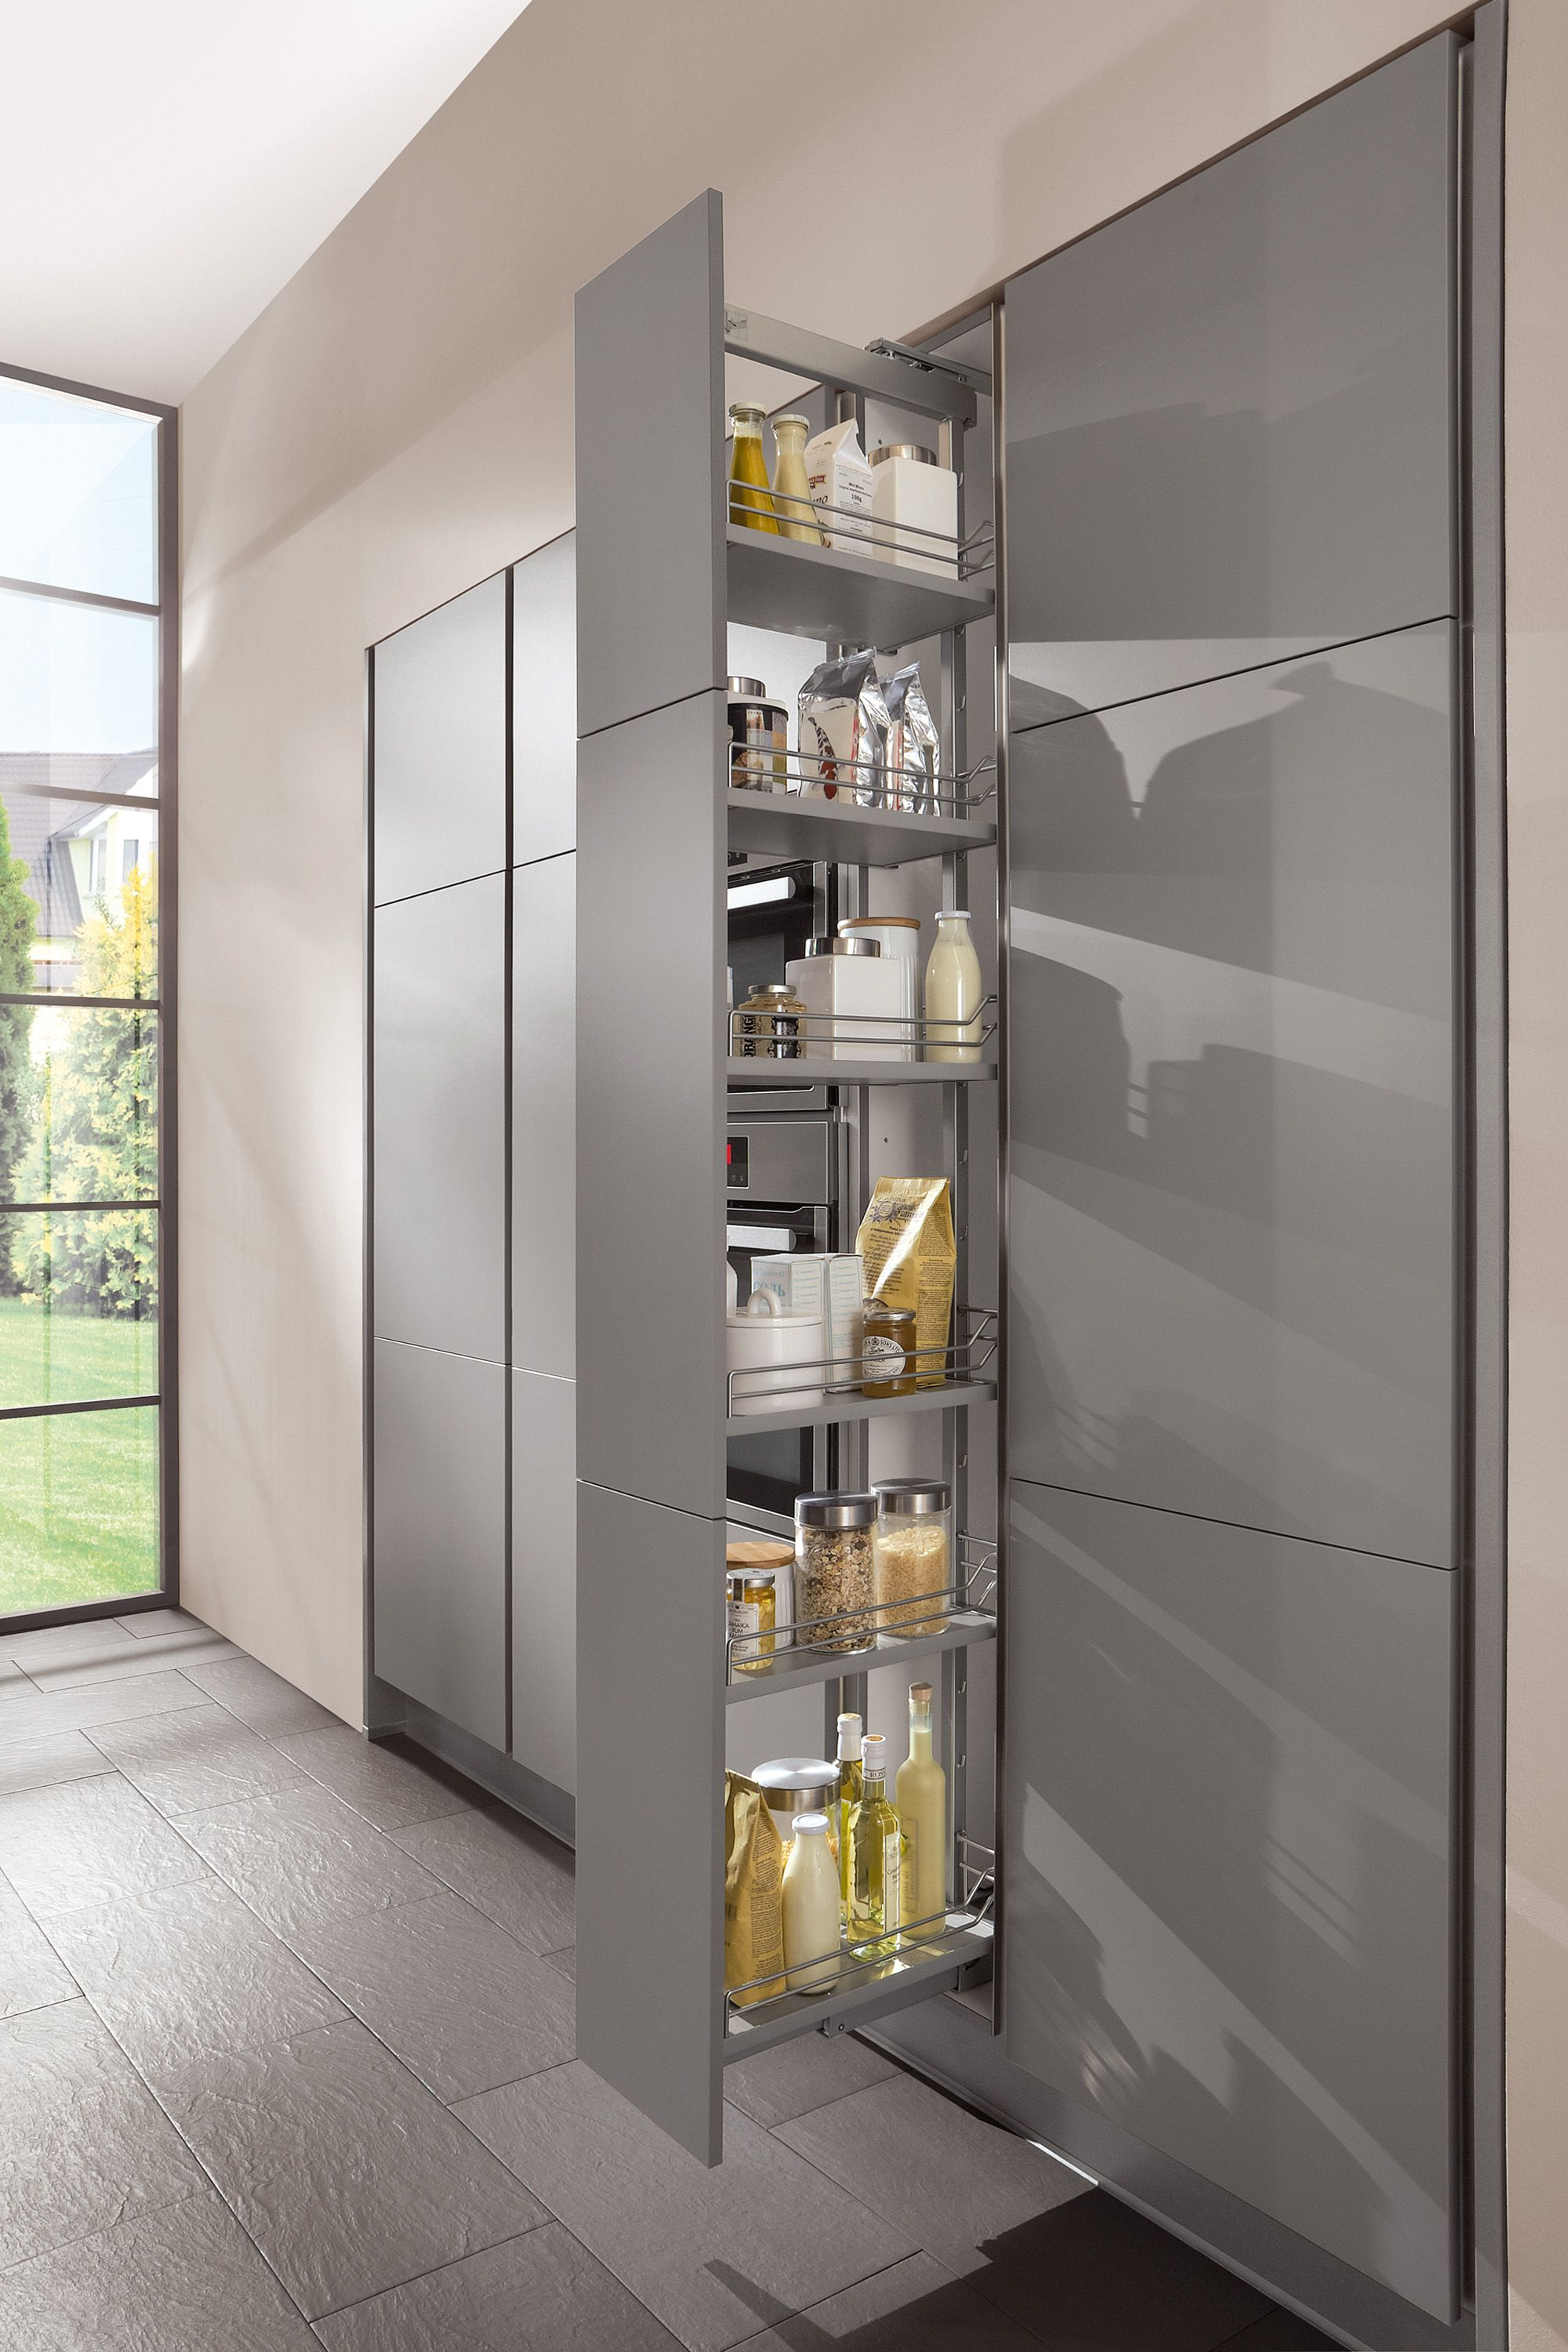 german kitchen design nobilia collection the harmonious union of aesthetics and on kitchen cabinets vertical lines id=21453